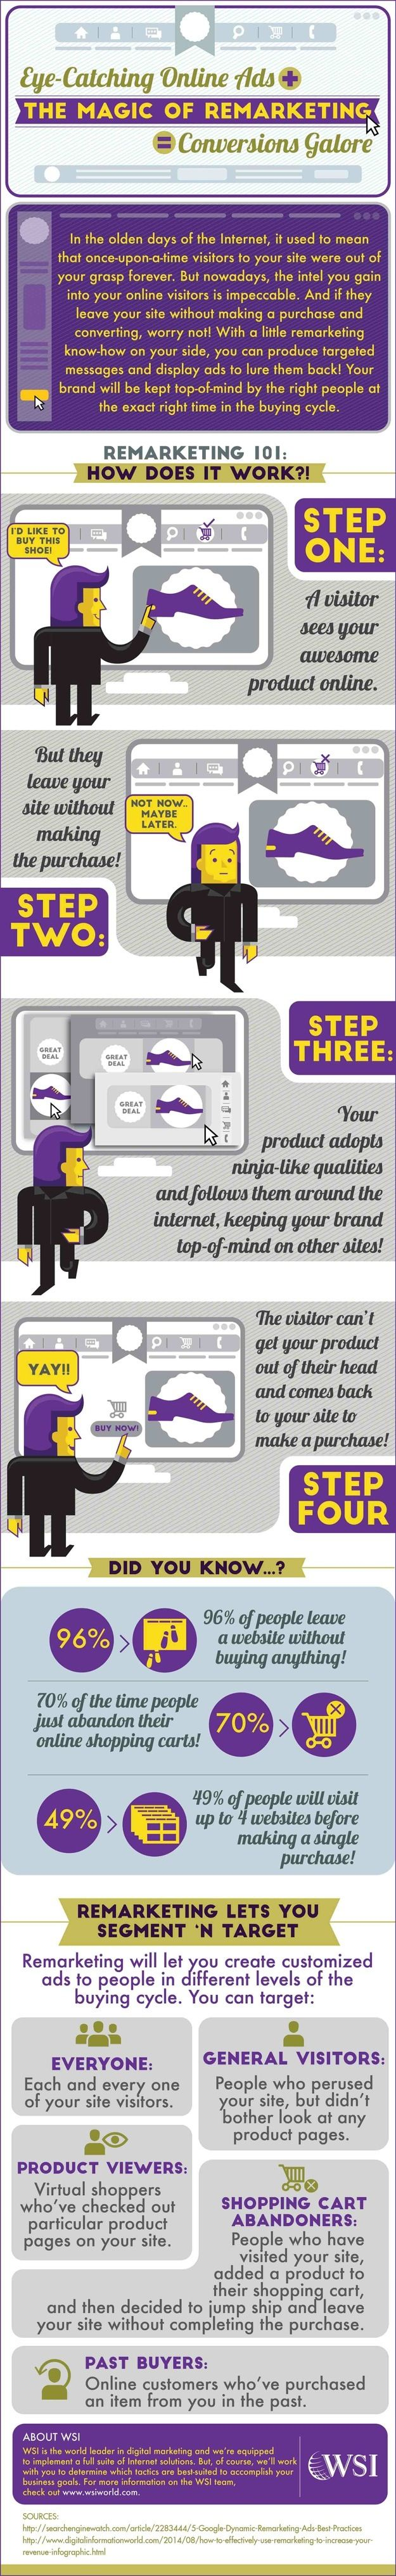 How remarketing campaigns can recapture the attention of consumers and help you drive more sales #infographic #marketing #advertising